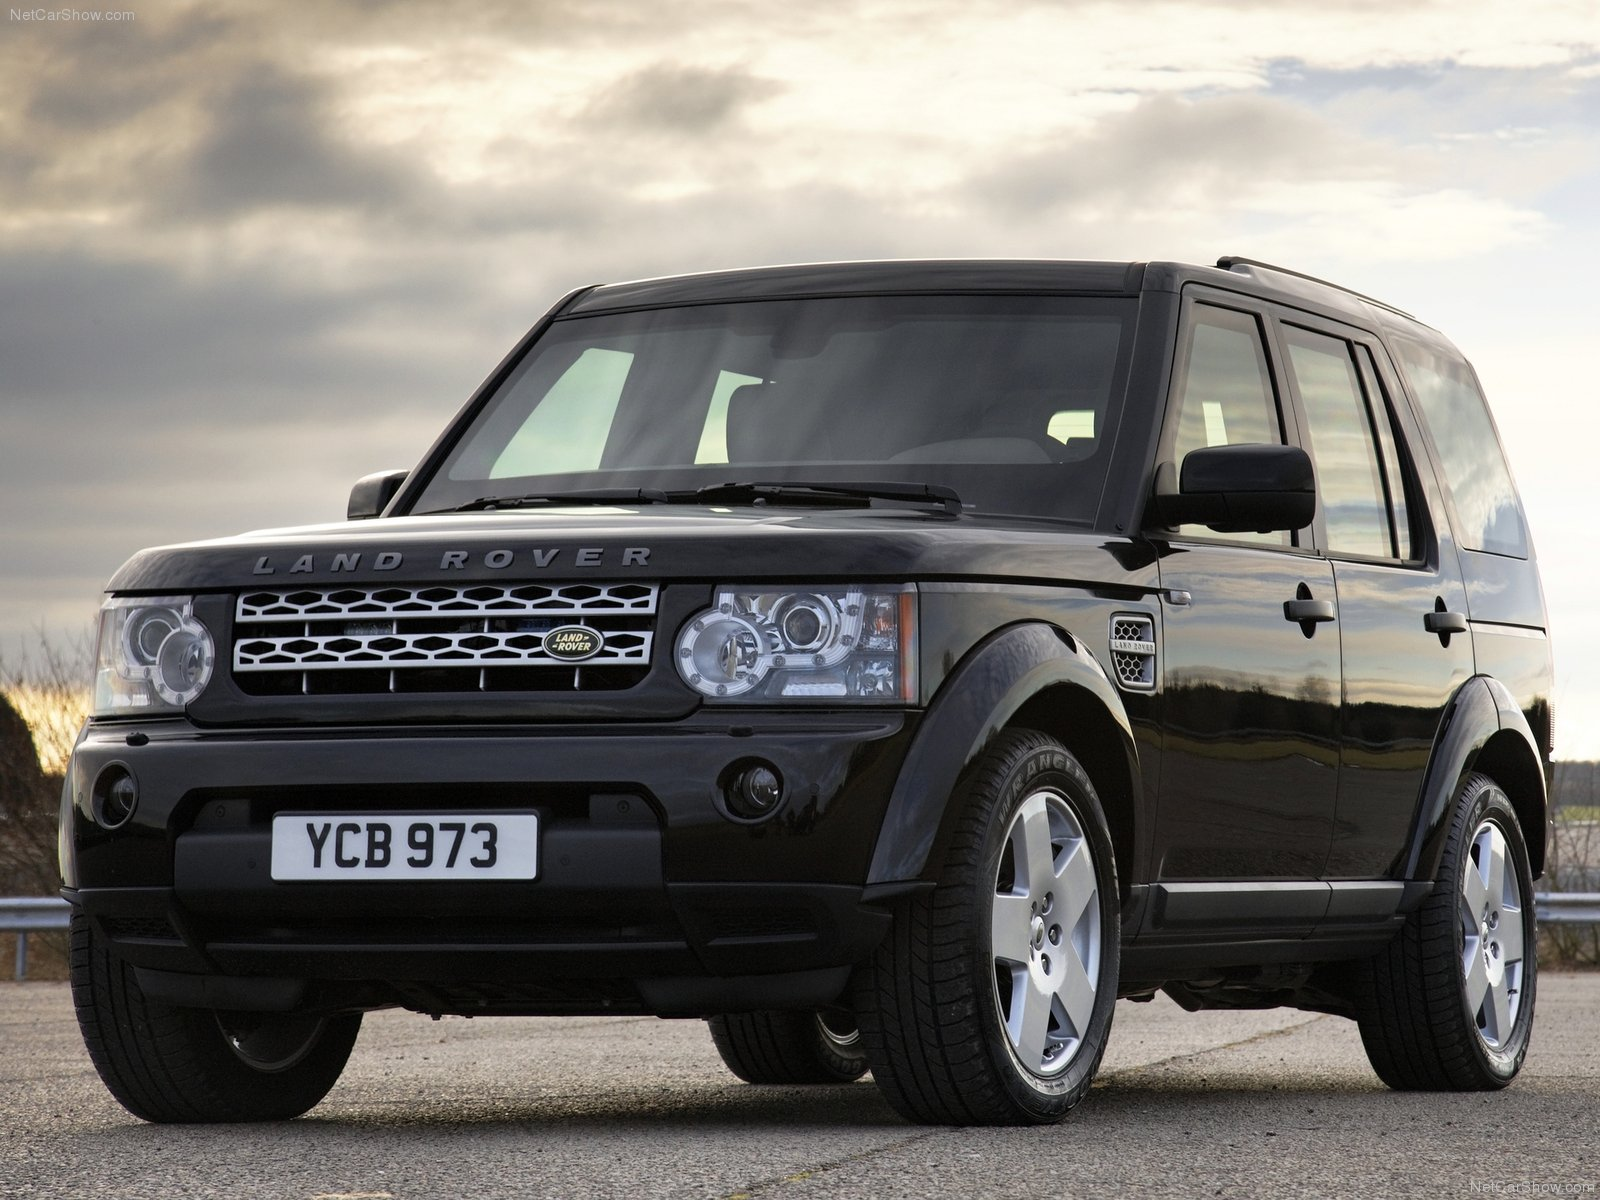 3dtuning Of Range Rover Discovery 4 Suv 2012 3dtuning Com